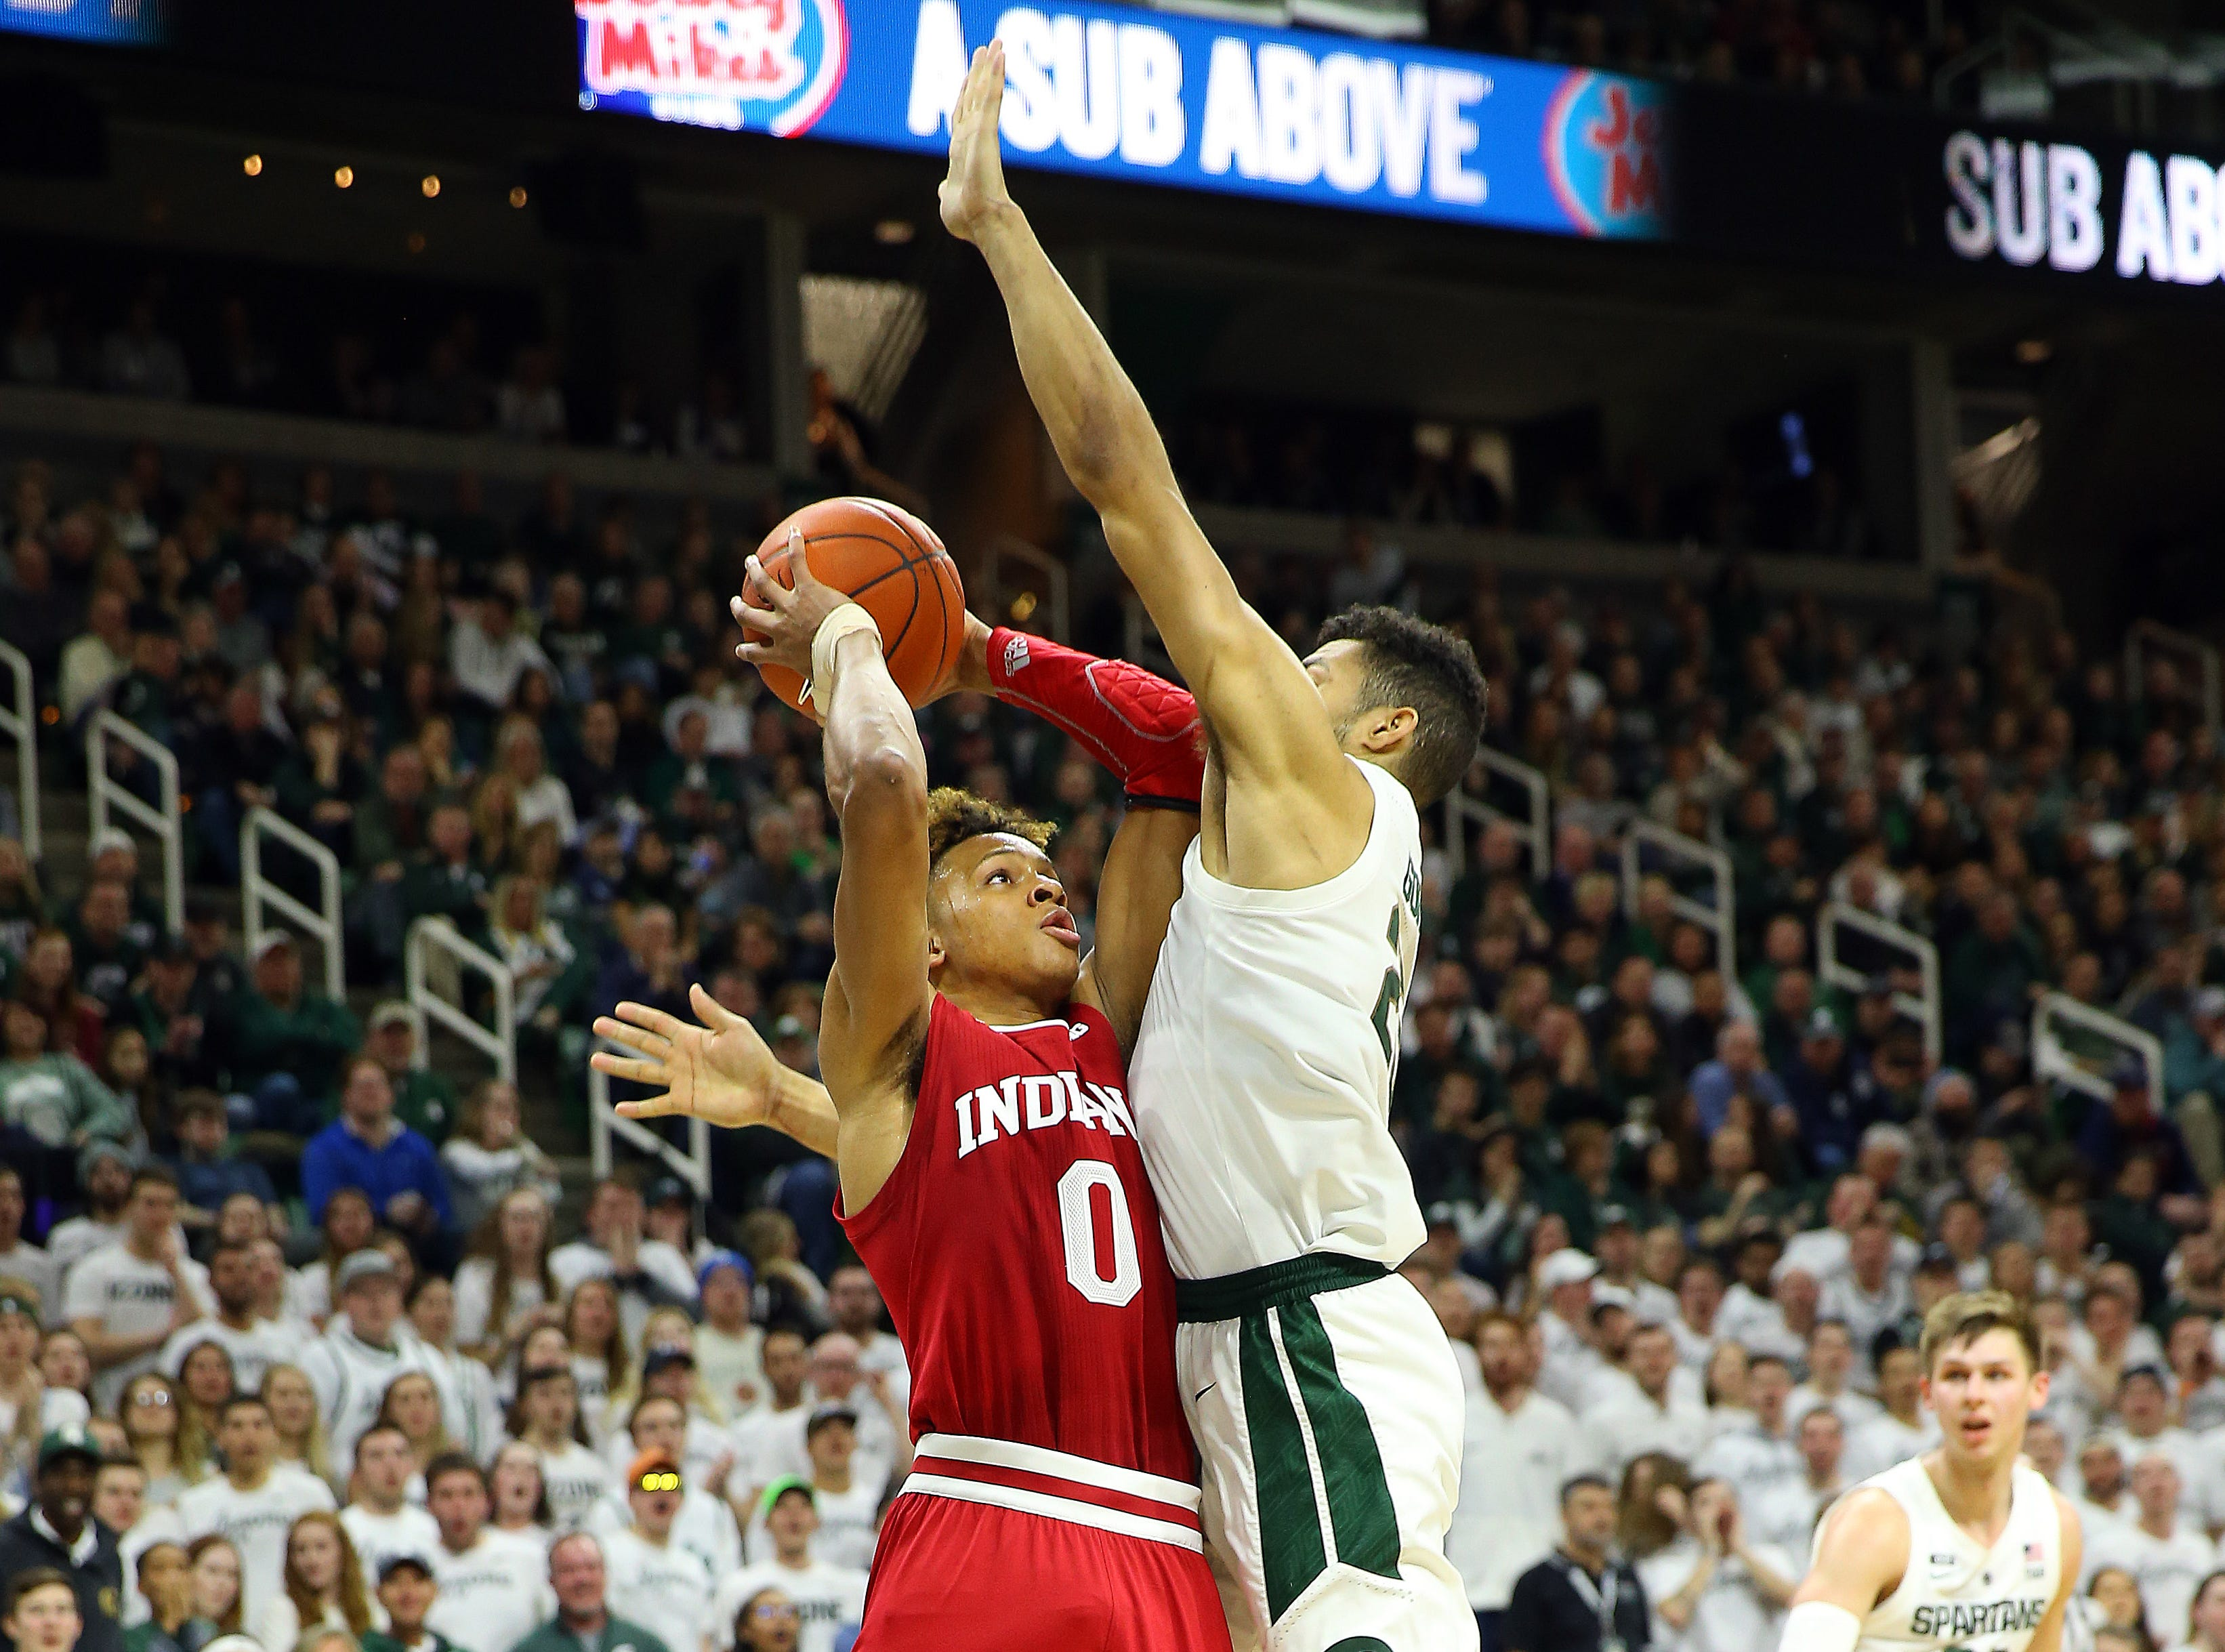 Feb 2, 2019; East Lansing, MI, USA; Indiana Hoosiers forward De'Ron Davis (20) is defended by Michigan State Spartans forward Kenny Goins (25) during the first half  at the Breslin Center. Mandatory Credit: Mike Carter-USA TODAY Sports